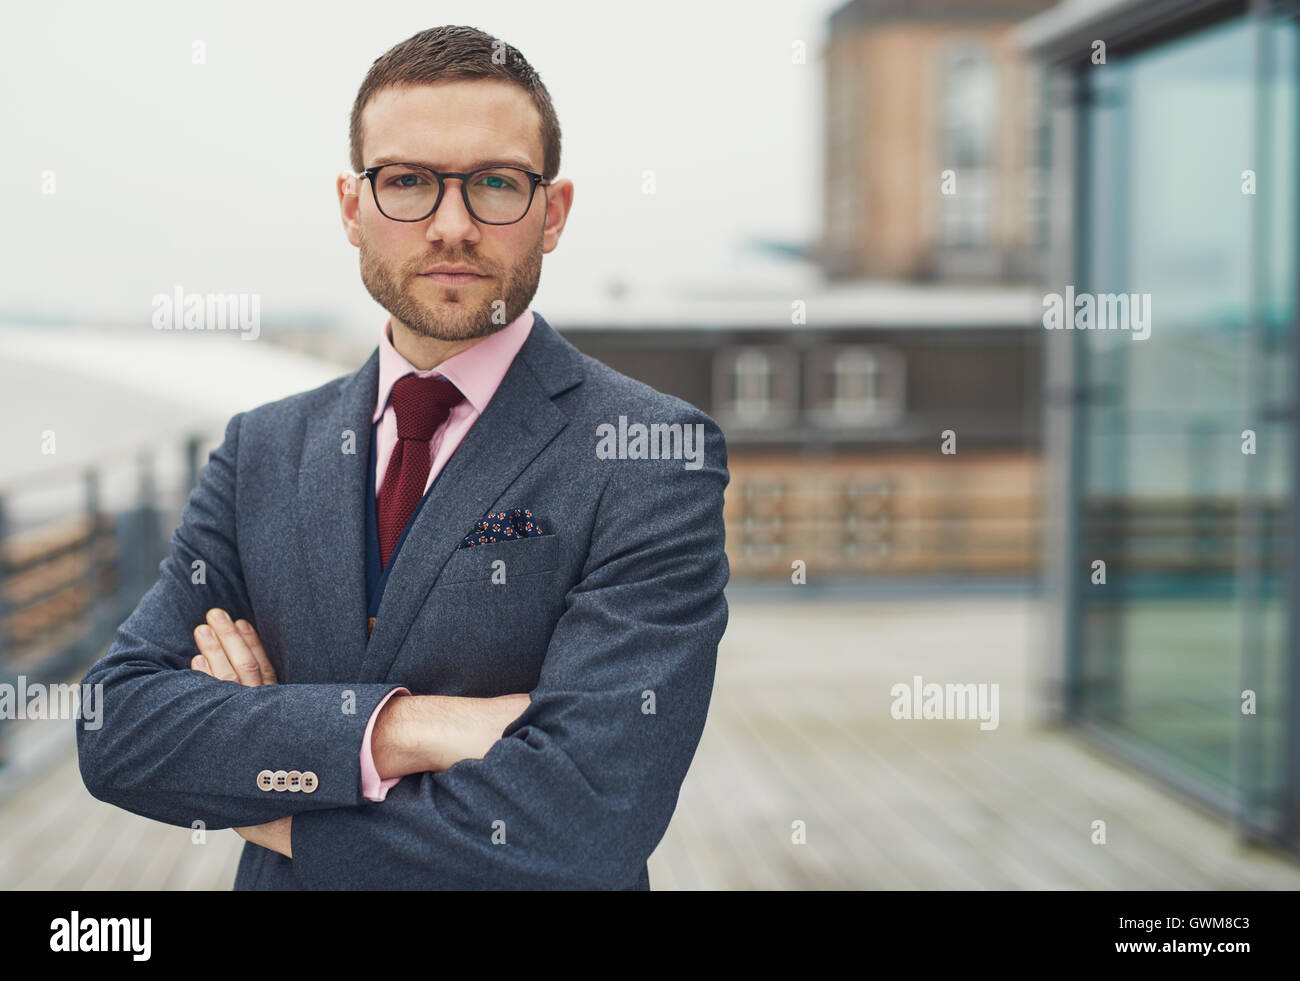 Confident stylish businessman wearing glasses standing on an open-air balcony looking thoughtfully at the camera - Stock Image